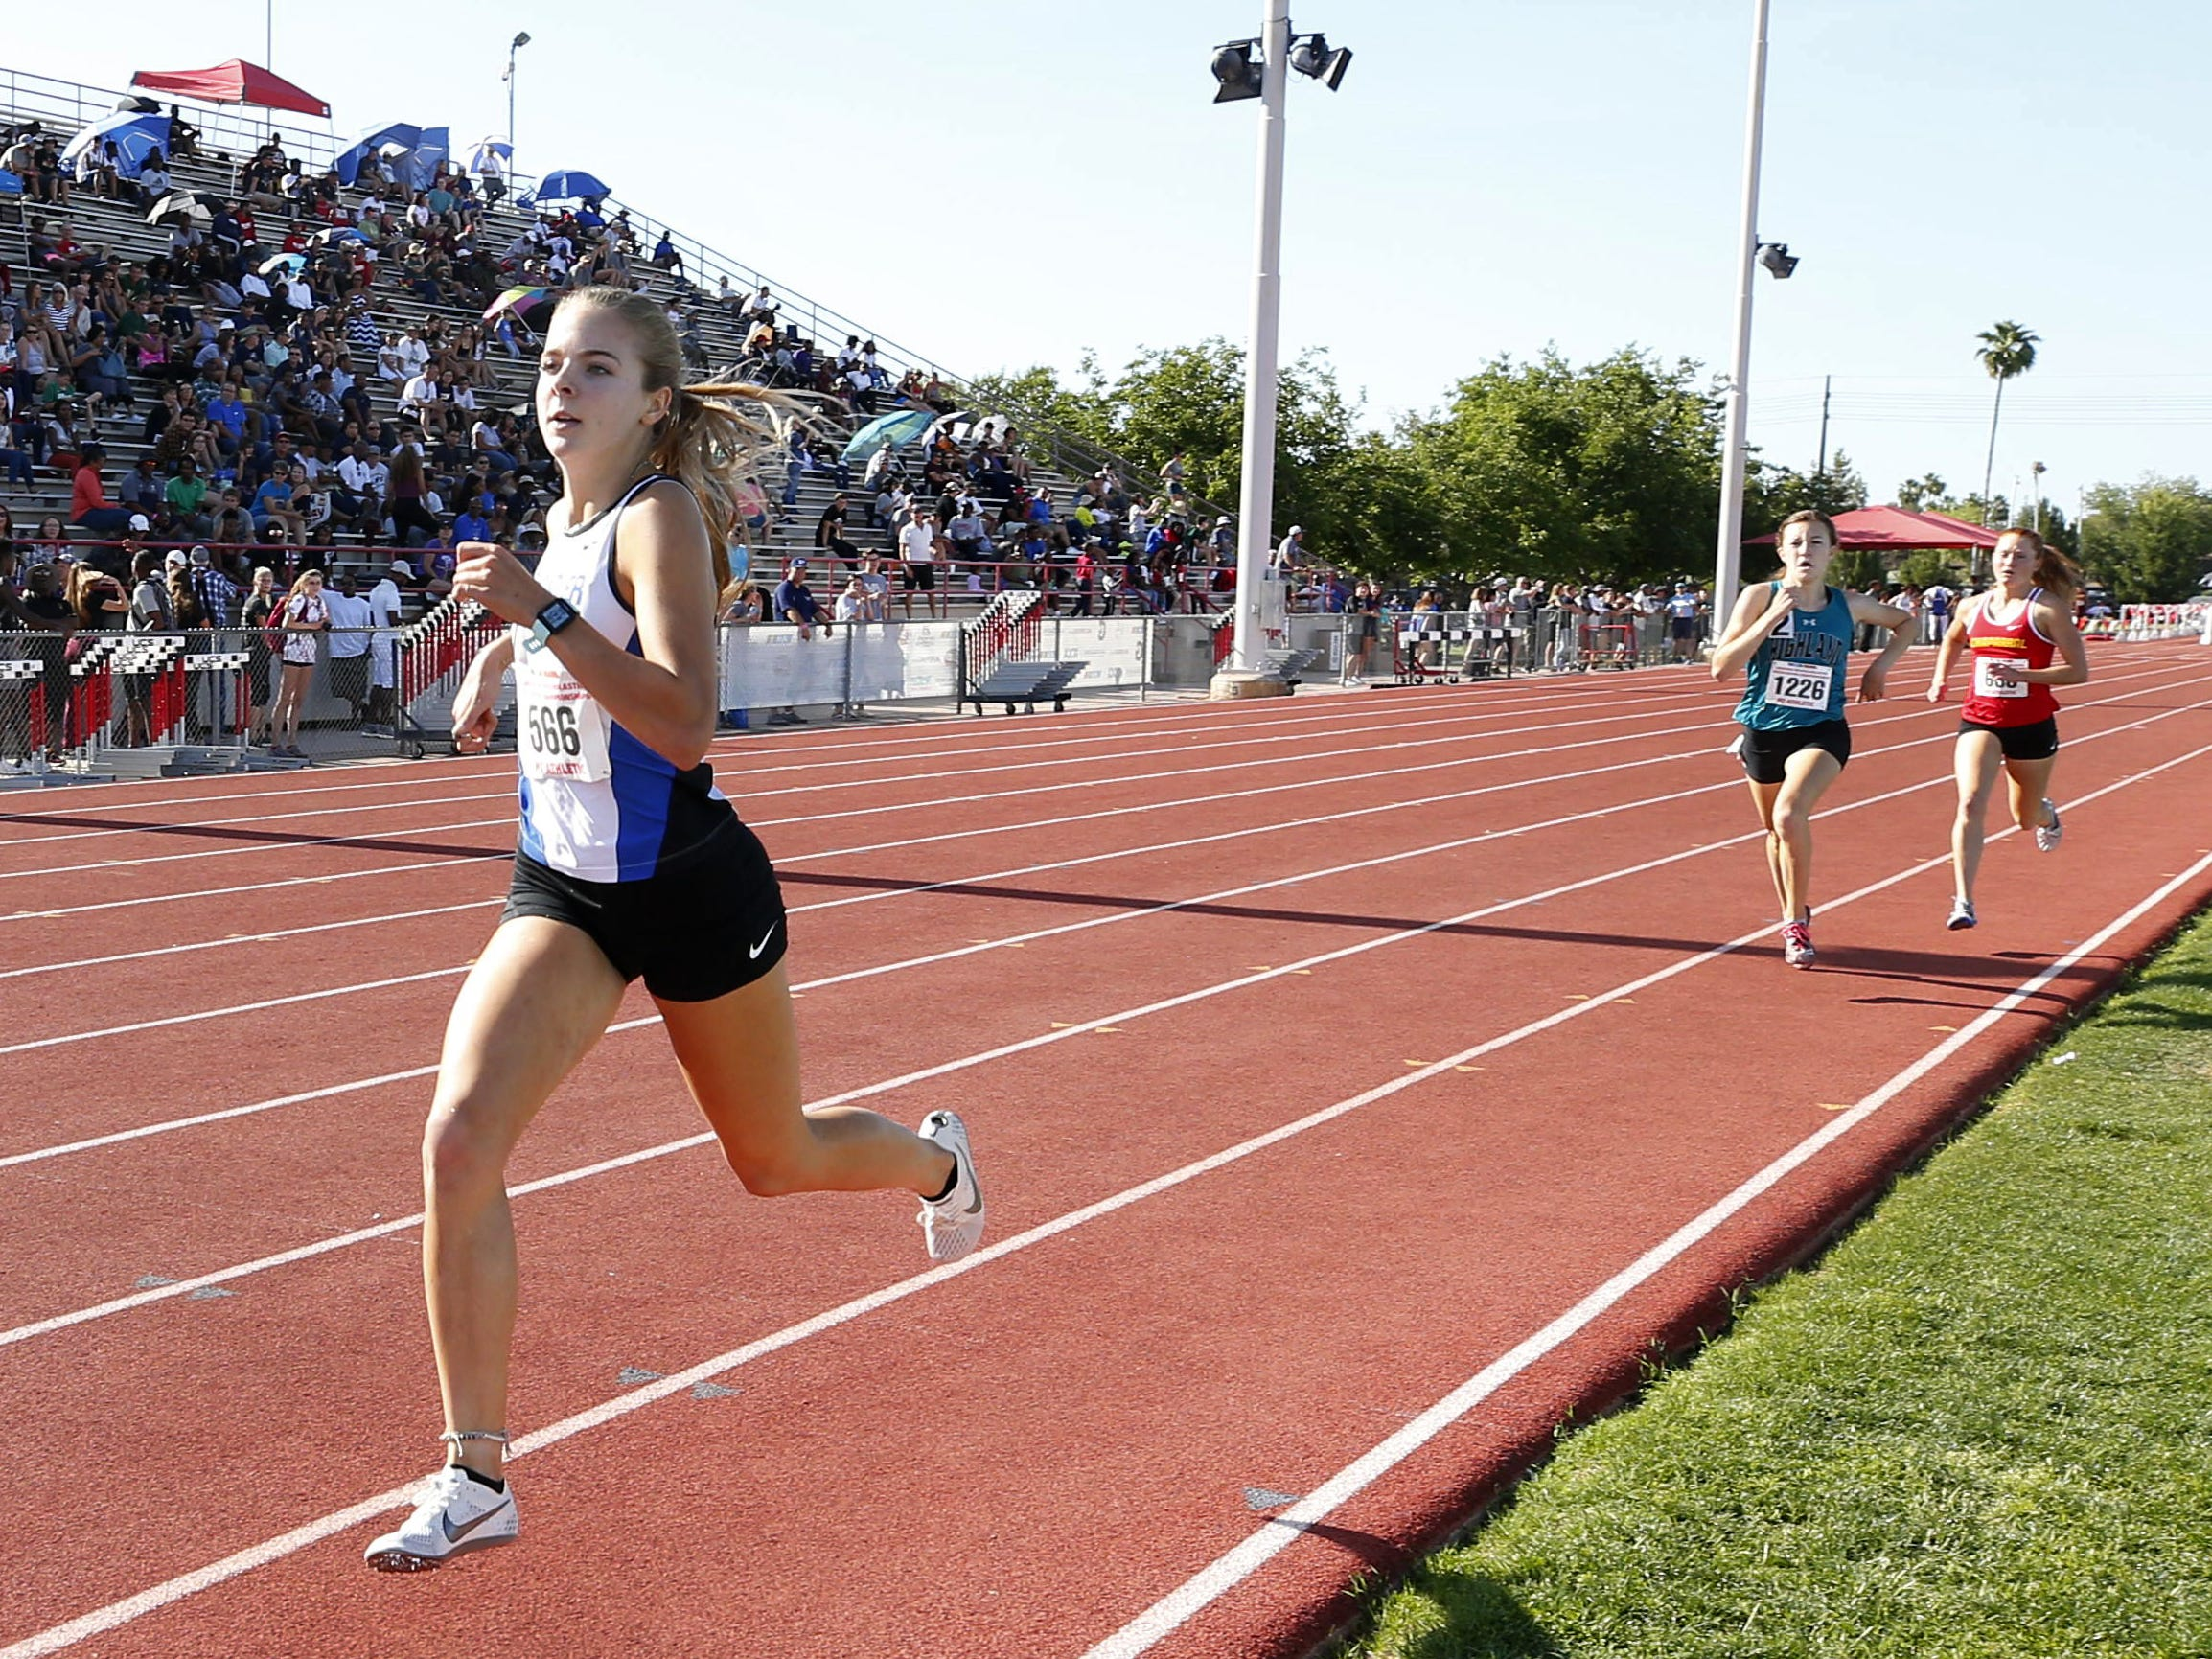 Chandler's Morgan Foster takes the lead over Highland's Caroline McLeskey, and Chaparral's Abi Archer in the Girls 1600 meter run Div. I during the state track and field meet at Mesa Community college on May 1, 2019.